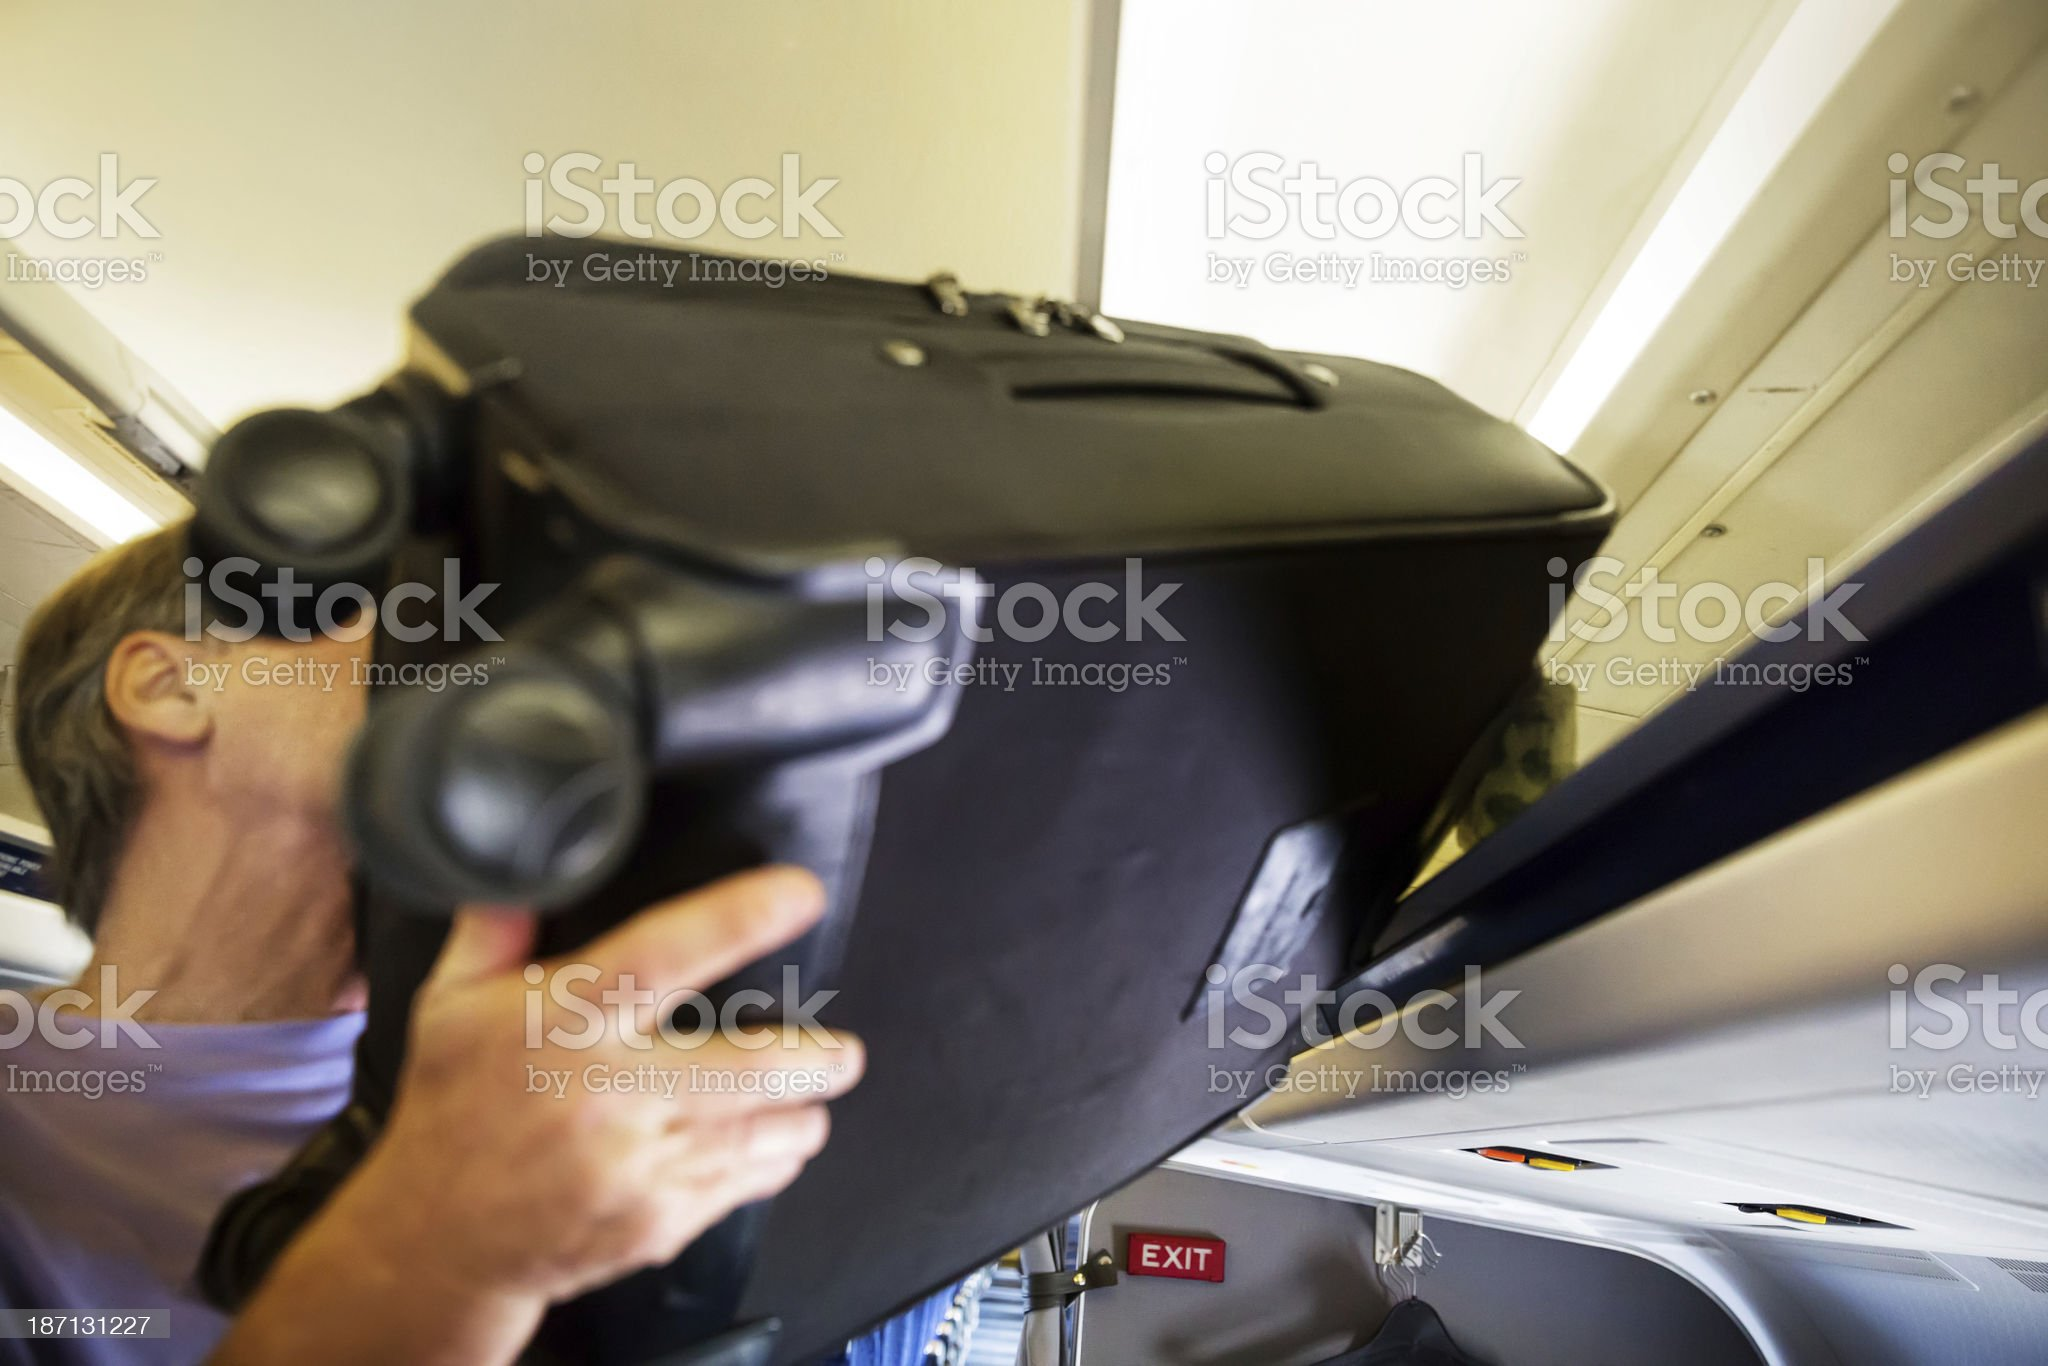 Senior man puts heavy luggage into plane's overhead compartment royalty-free stock photo